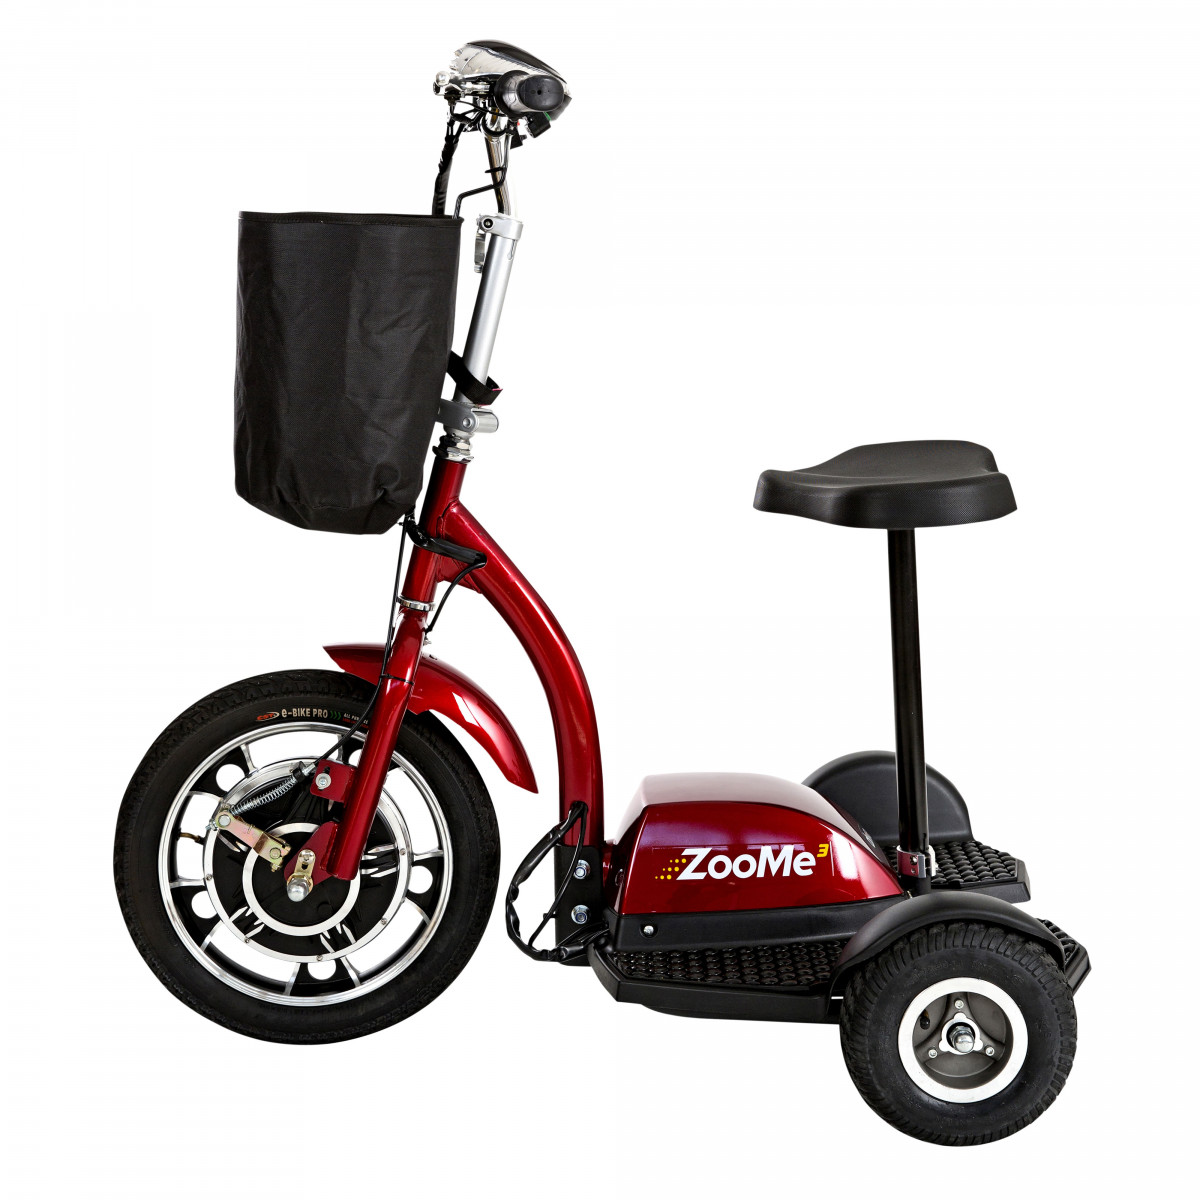 zoome 3 wheel recreational scooter bb5